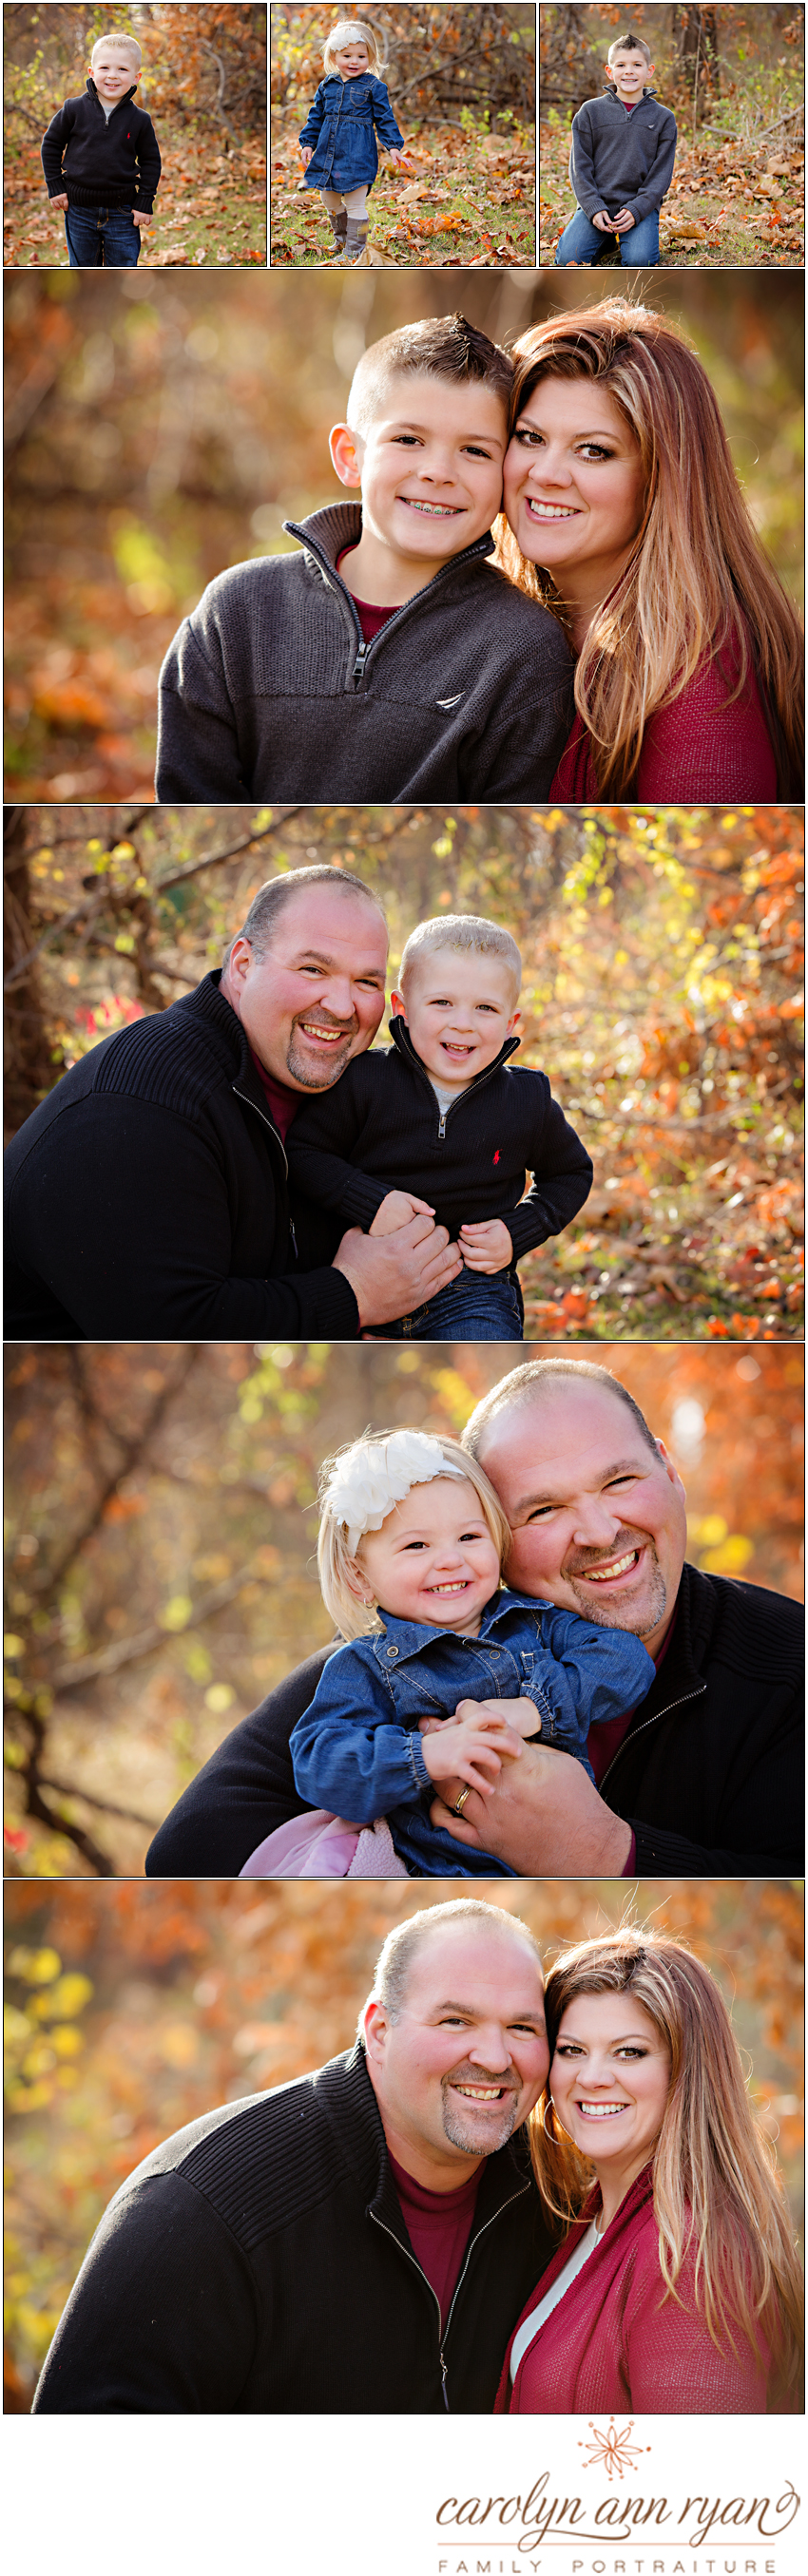 Classic Charlotte, NC Fall Family Portraits by Photographer Carolyn Ann Ryan